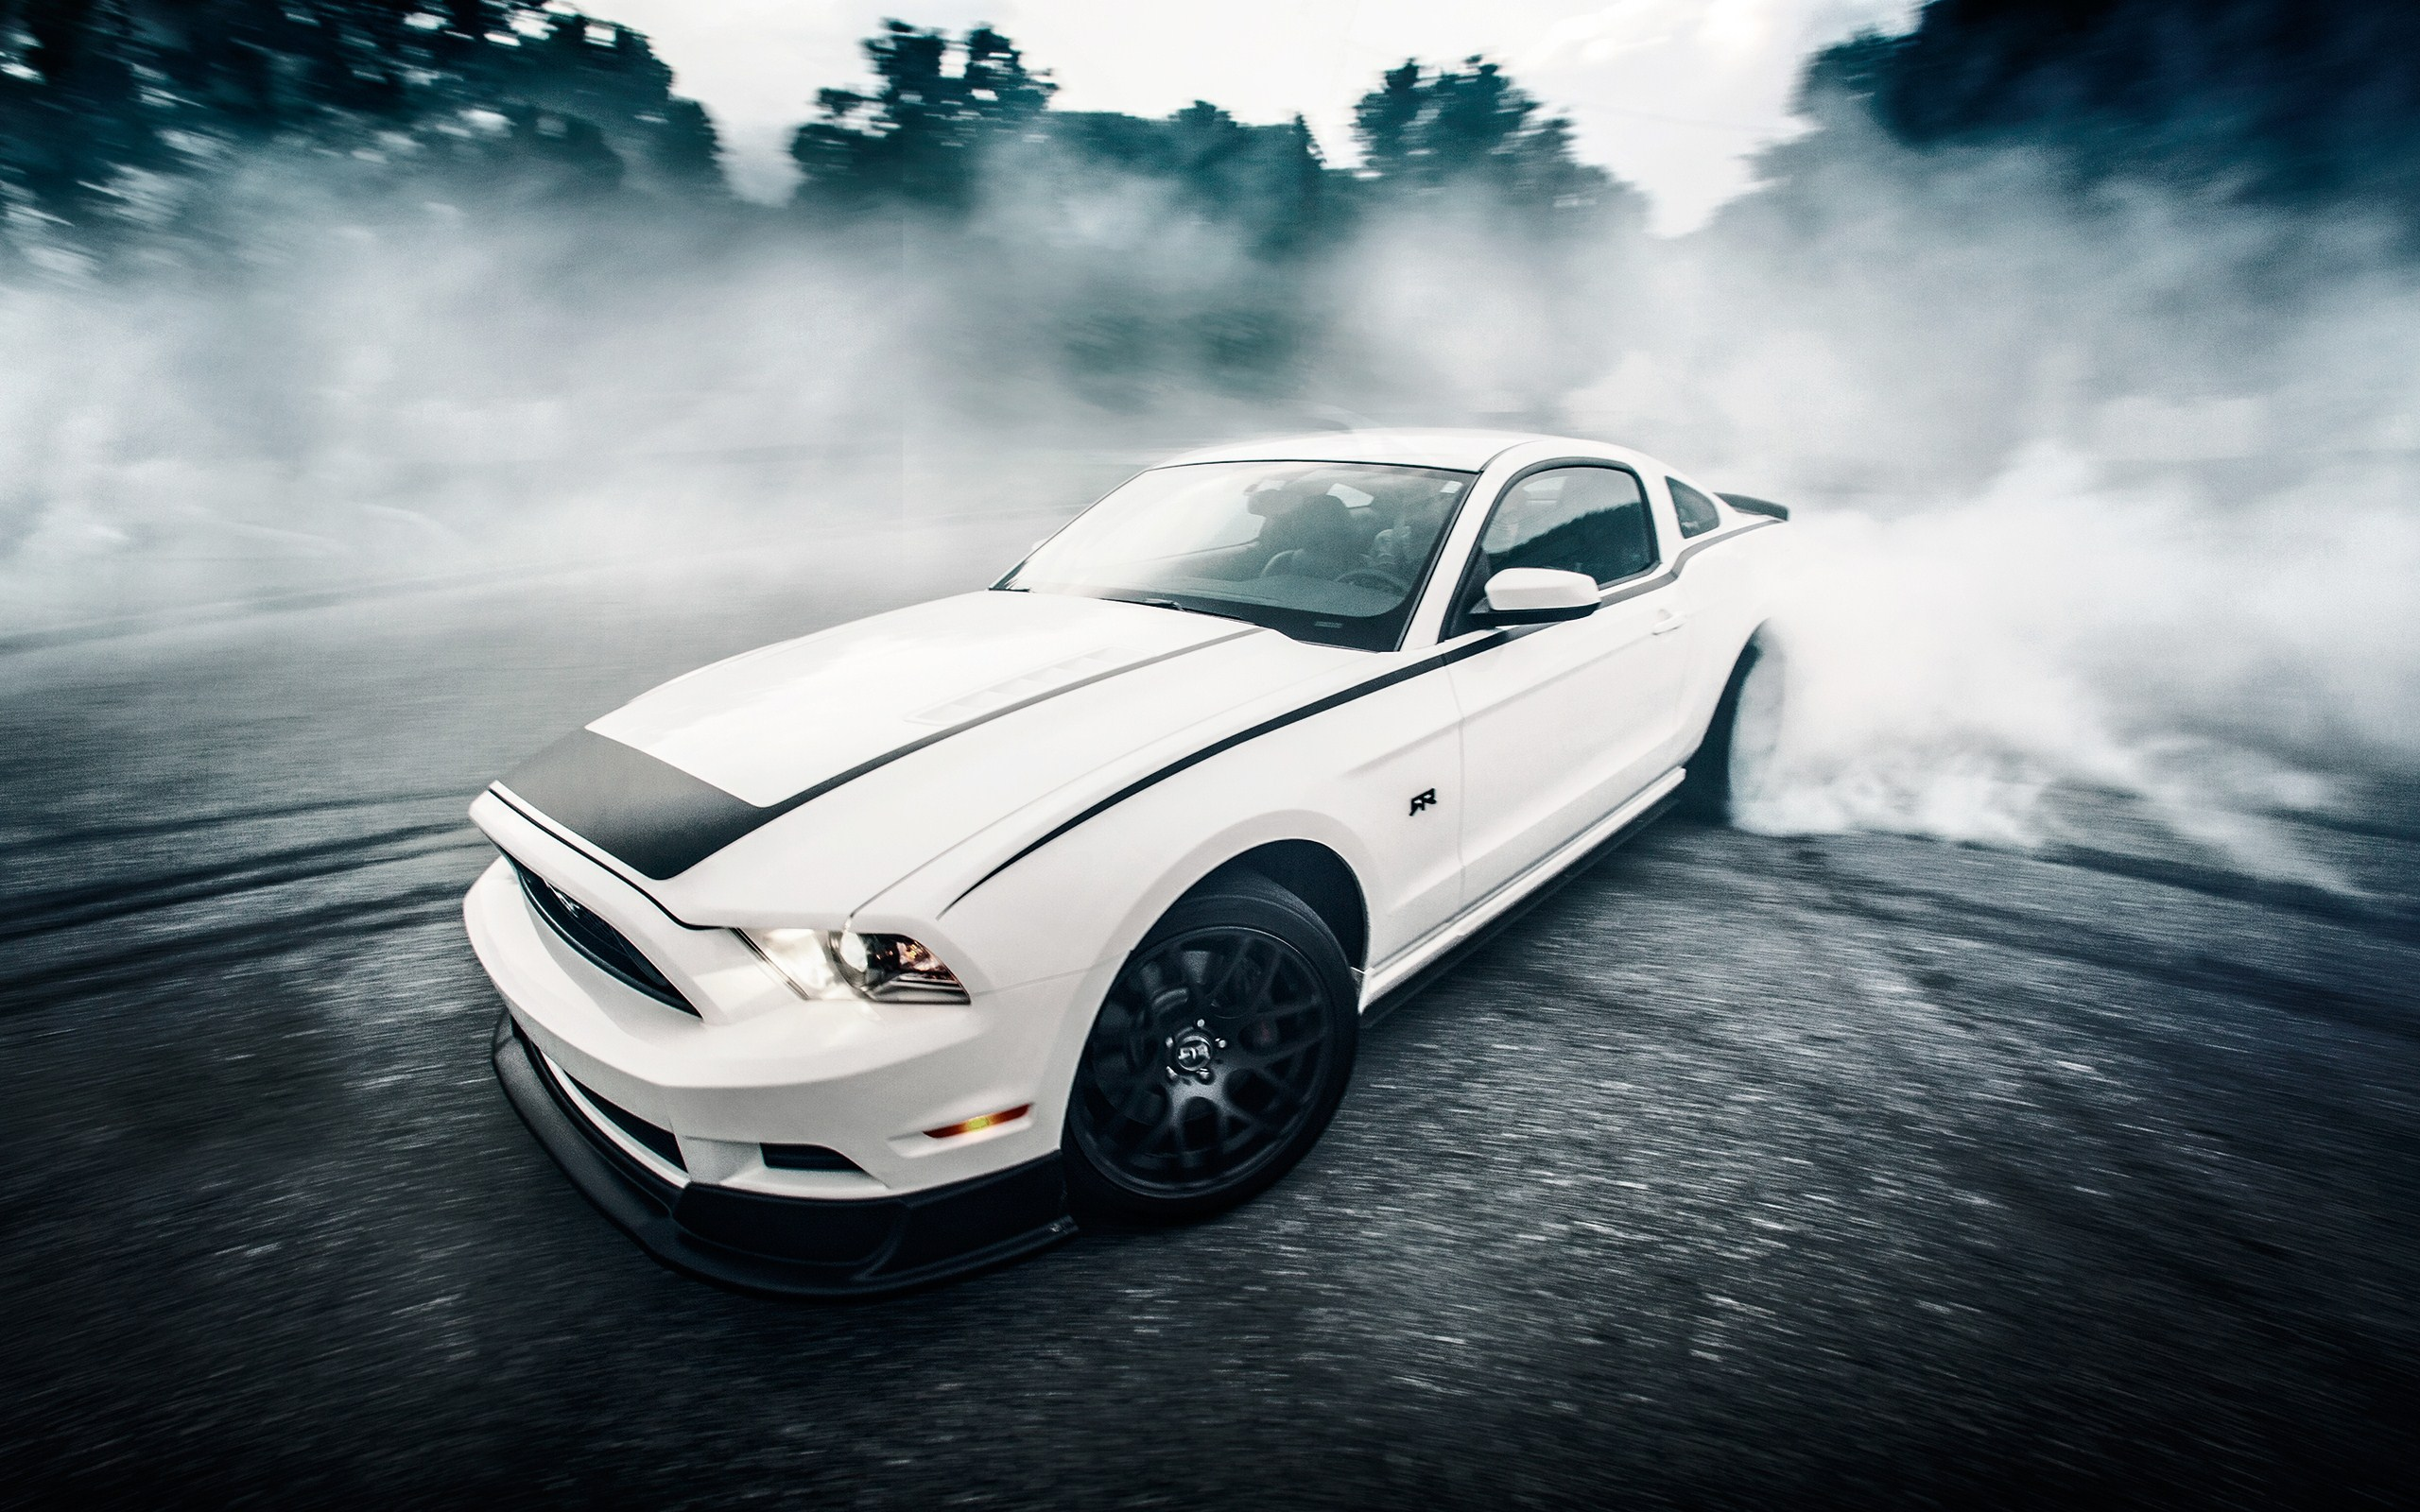 Awesome Hd Car Burnout Wallpapers Hdwallsource Com